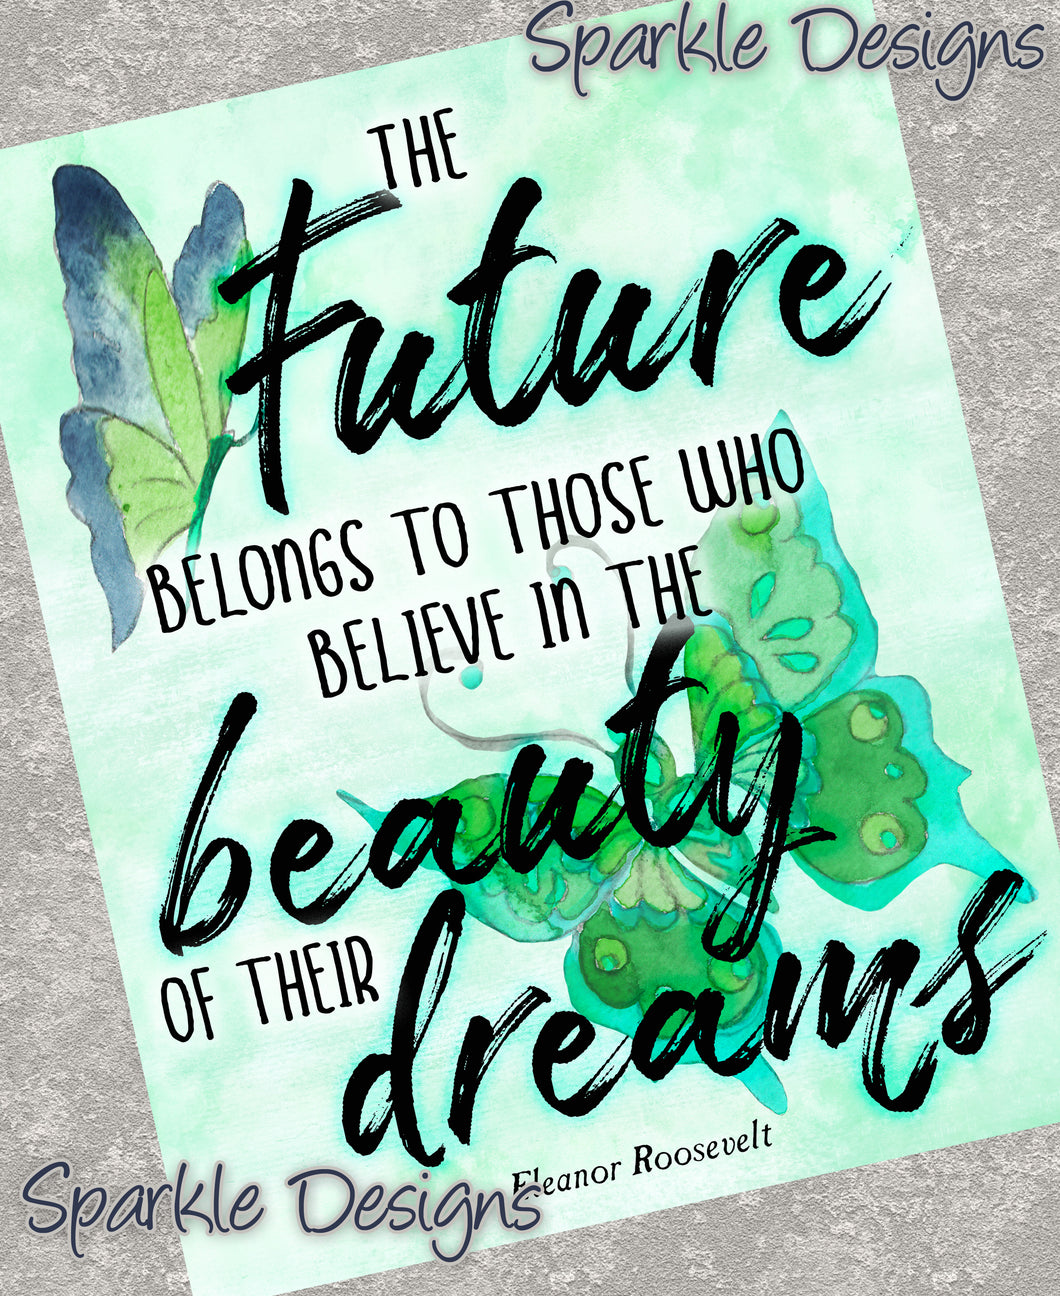 Beauty of their dreams - Eleanor Roosevelt 233 Art Print